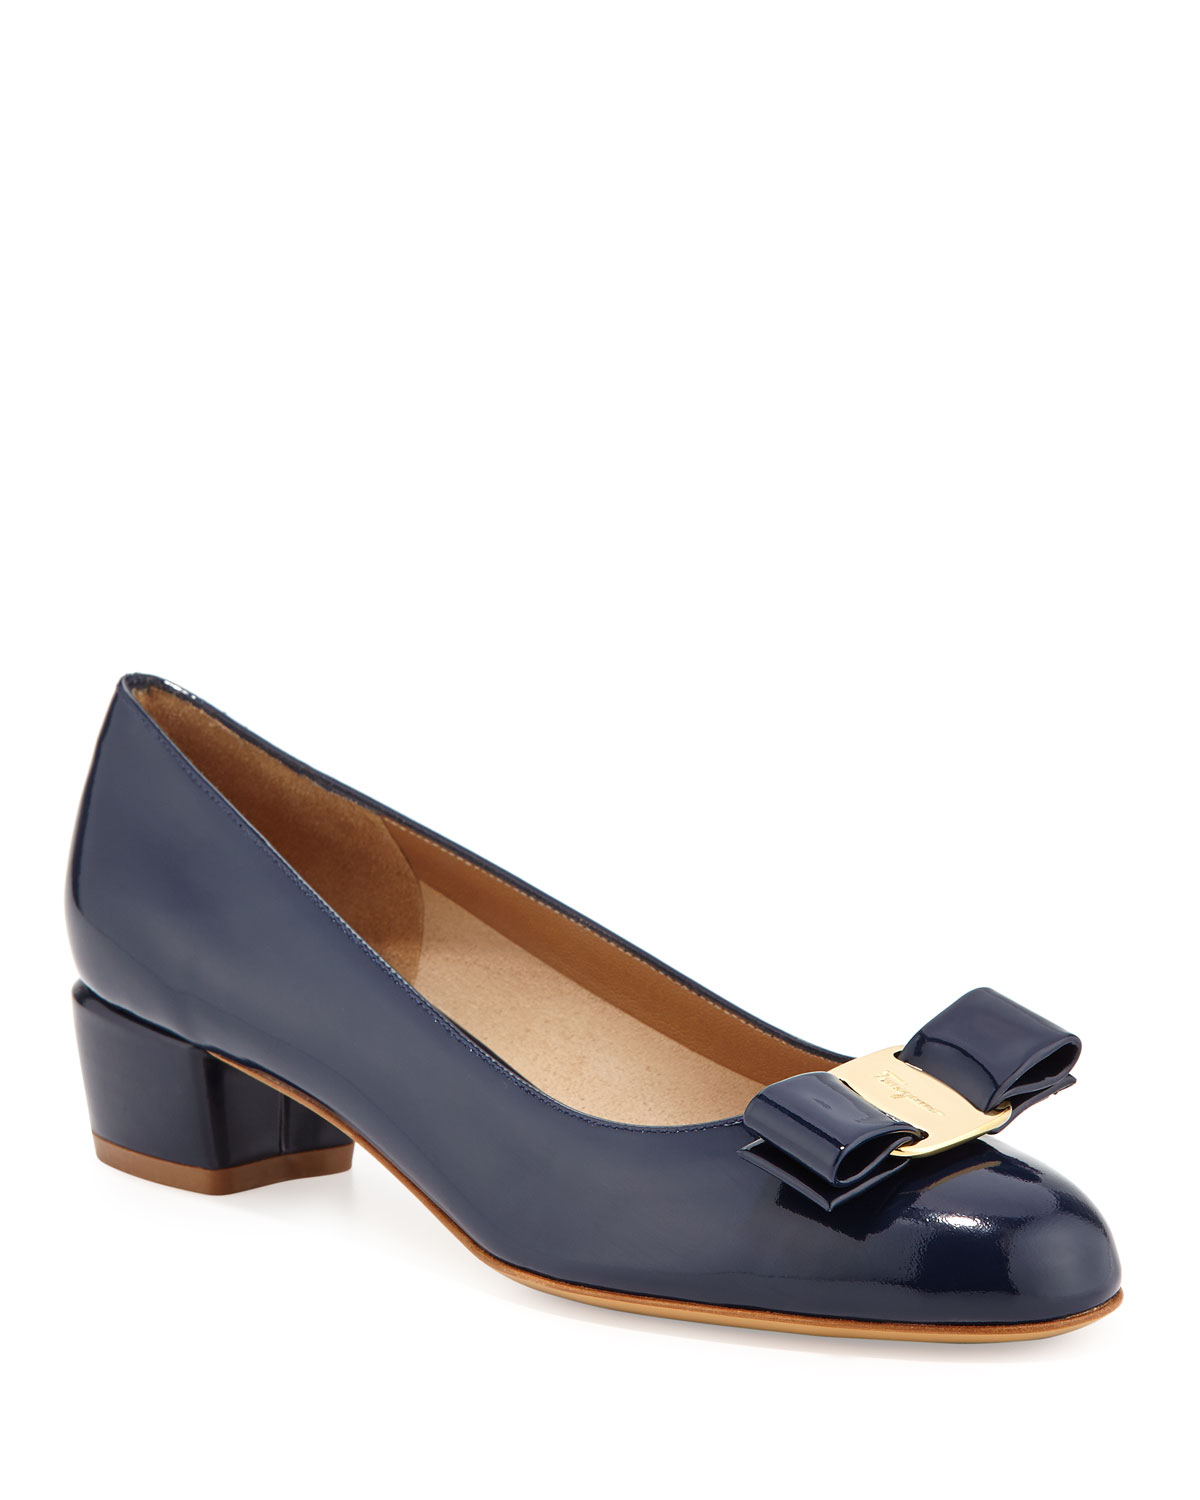 Salvatore Ferragamo Vara 1 Patent Bow Pumps